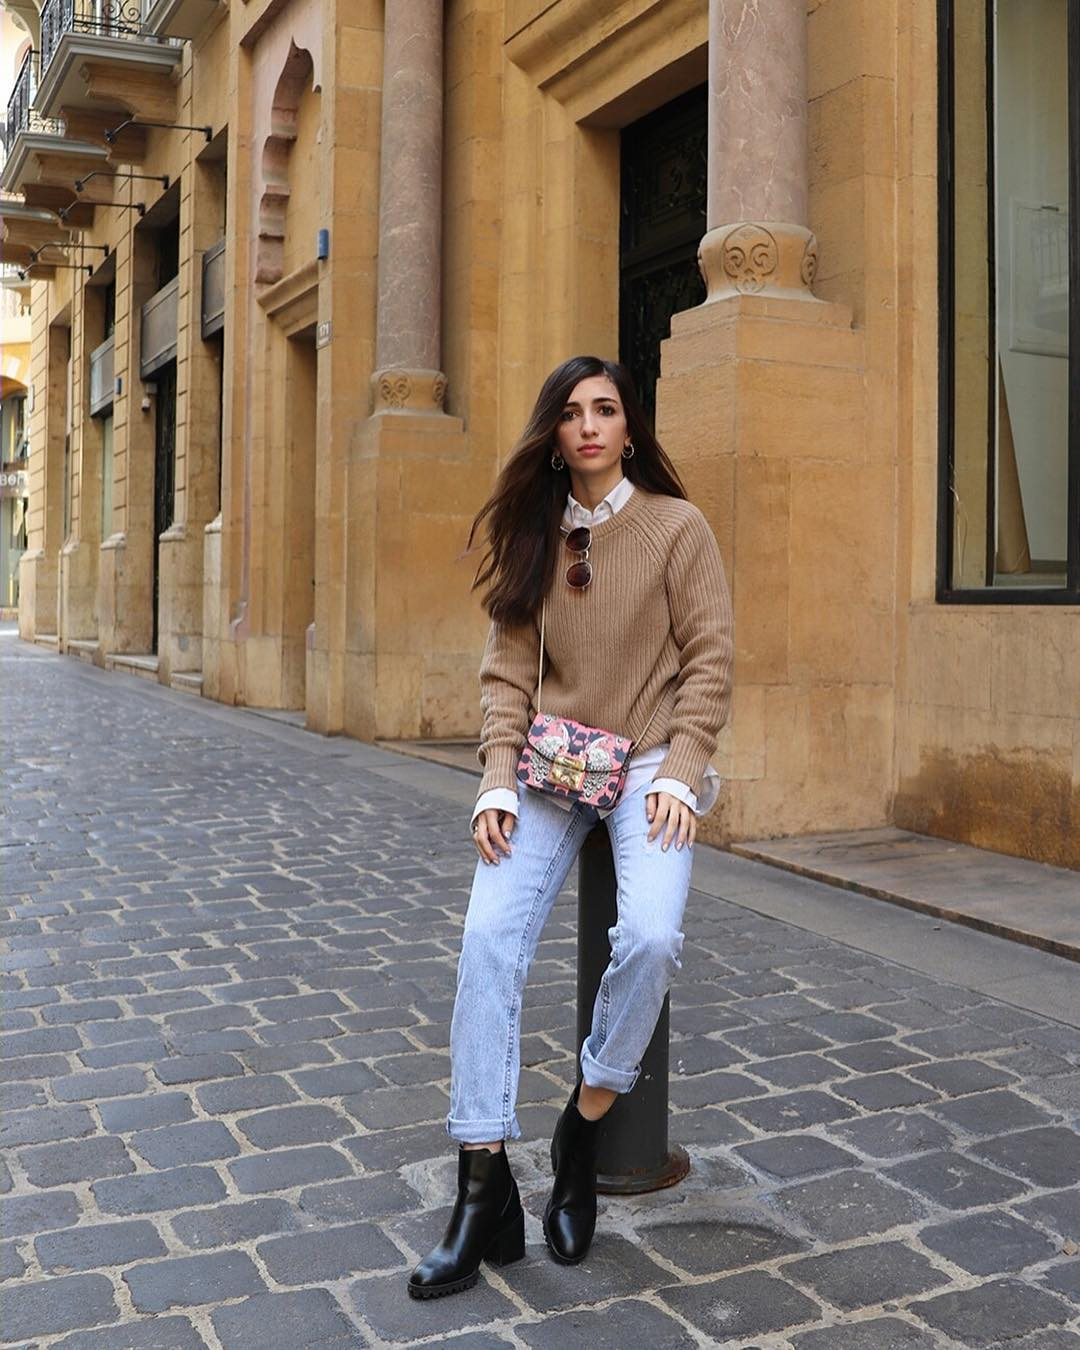 Beige Sweater, Cuffed Jeans And Black Leather Ankle Boots: Normcore Style For Fall 2019